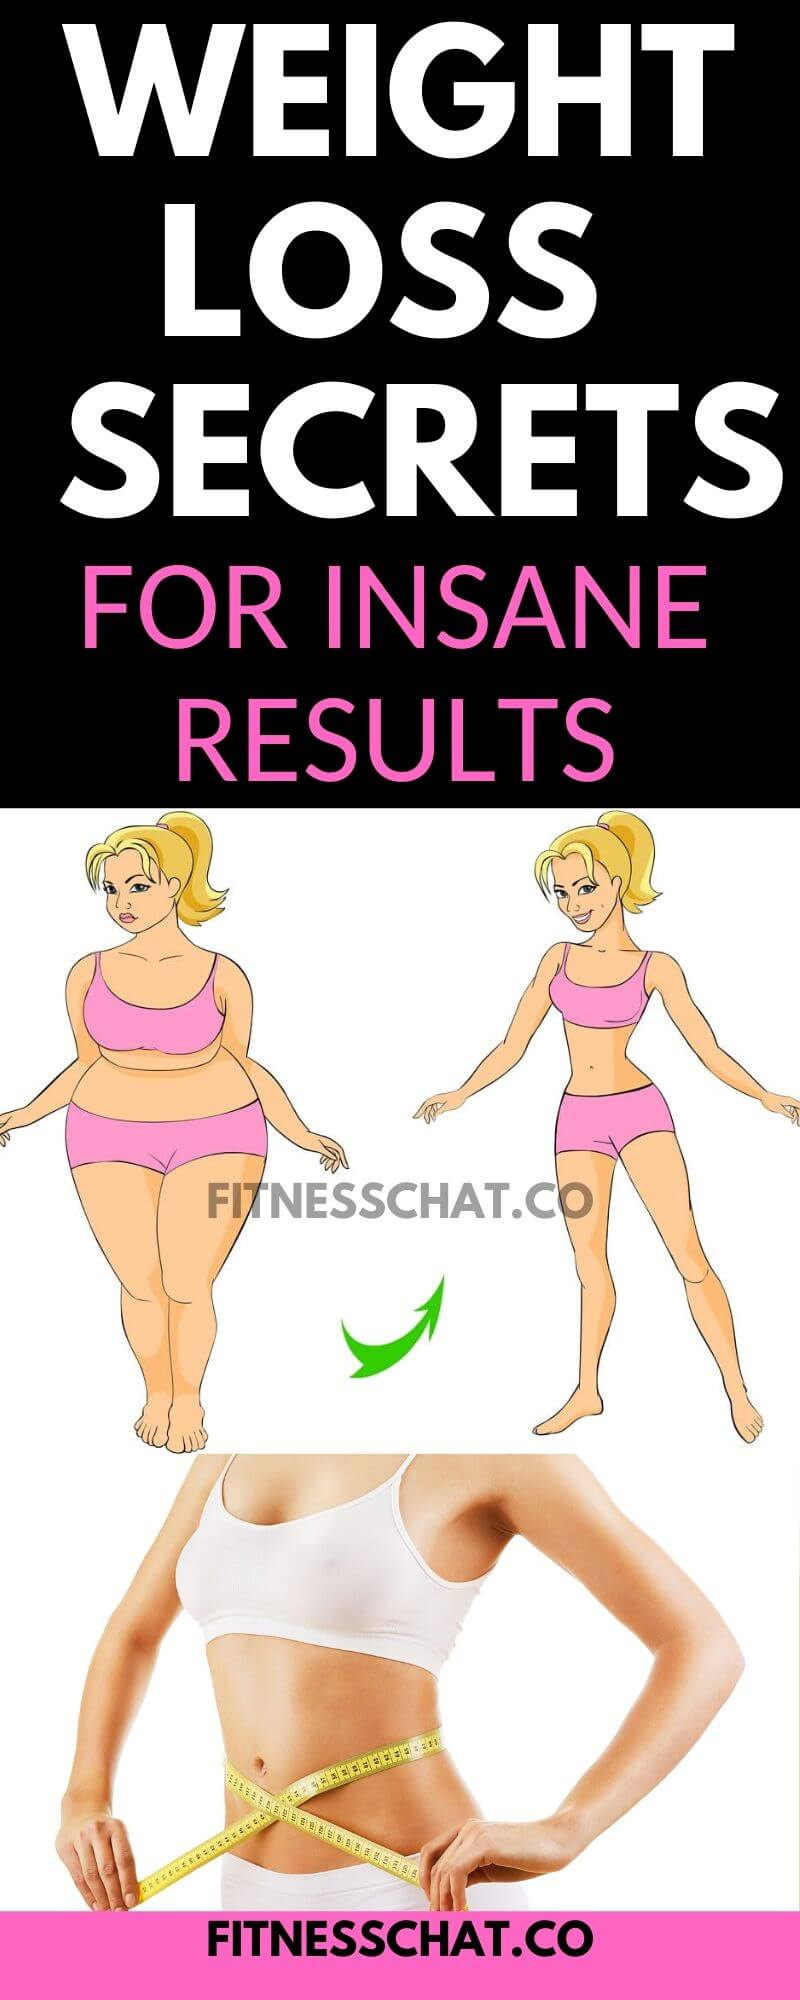 How to lose weight. weight loss tips that will help you lose weight fast and get insane before and after results